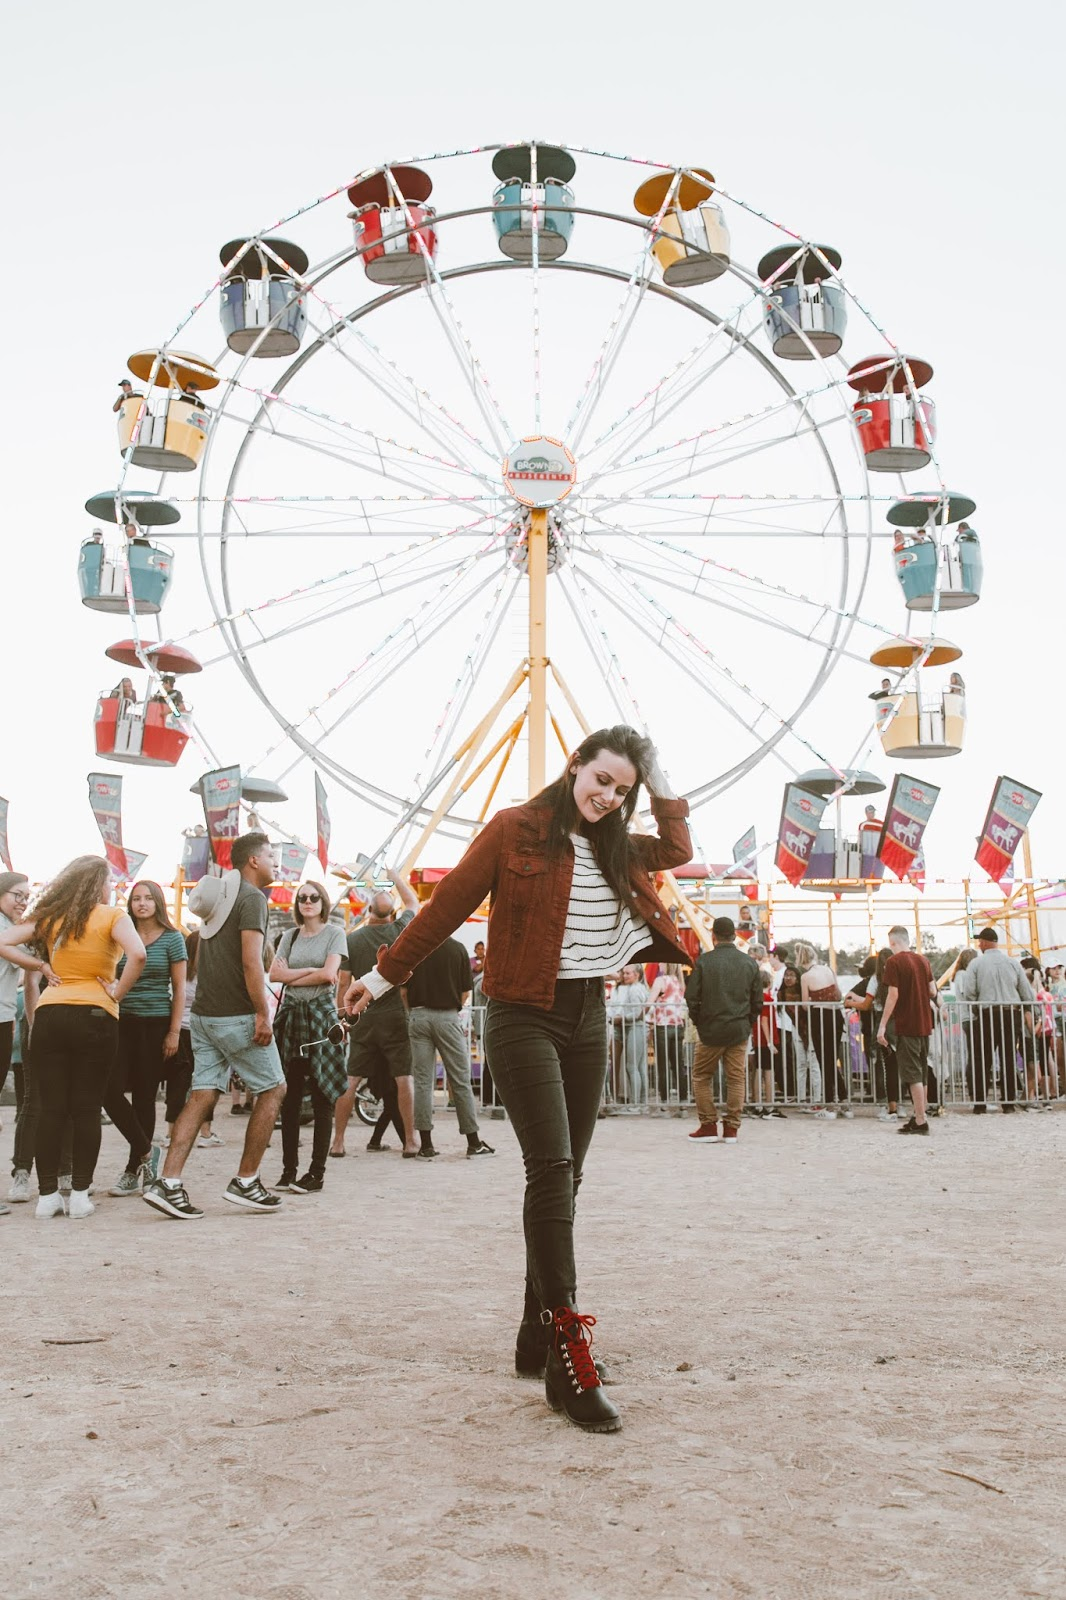 Shelly Stuckman, Yavapai County Fair, fall style 2018, Charlotte Russe, Ferris wheel, ArizonaGirl.com